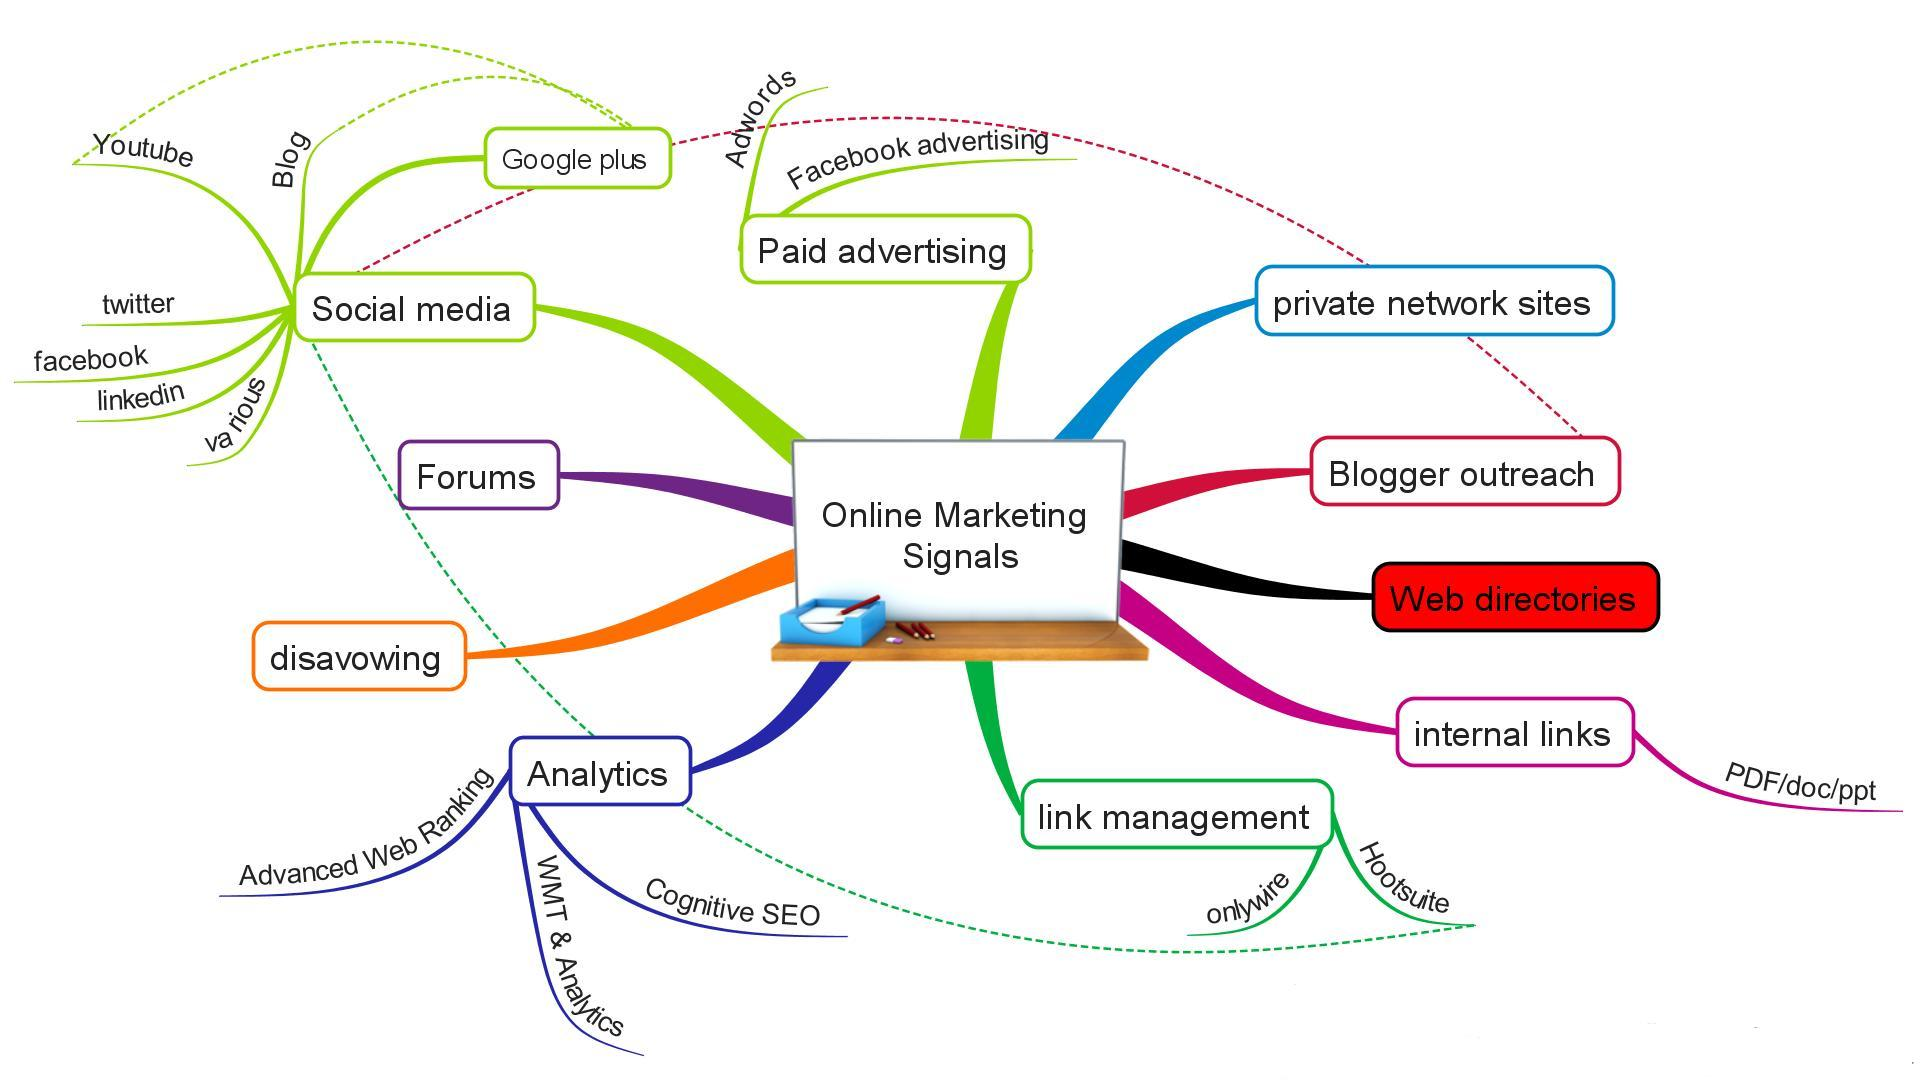 Online Marketing Signals